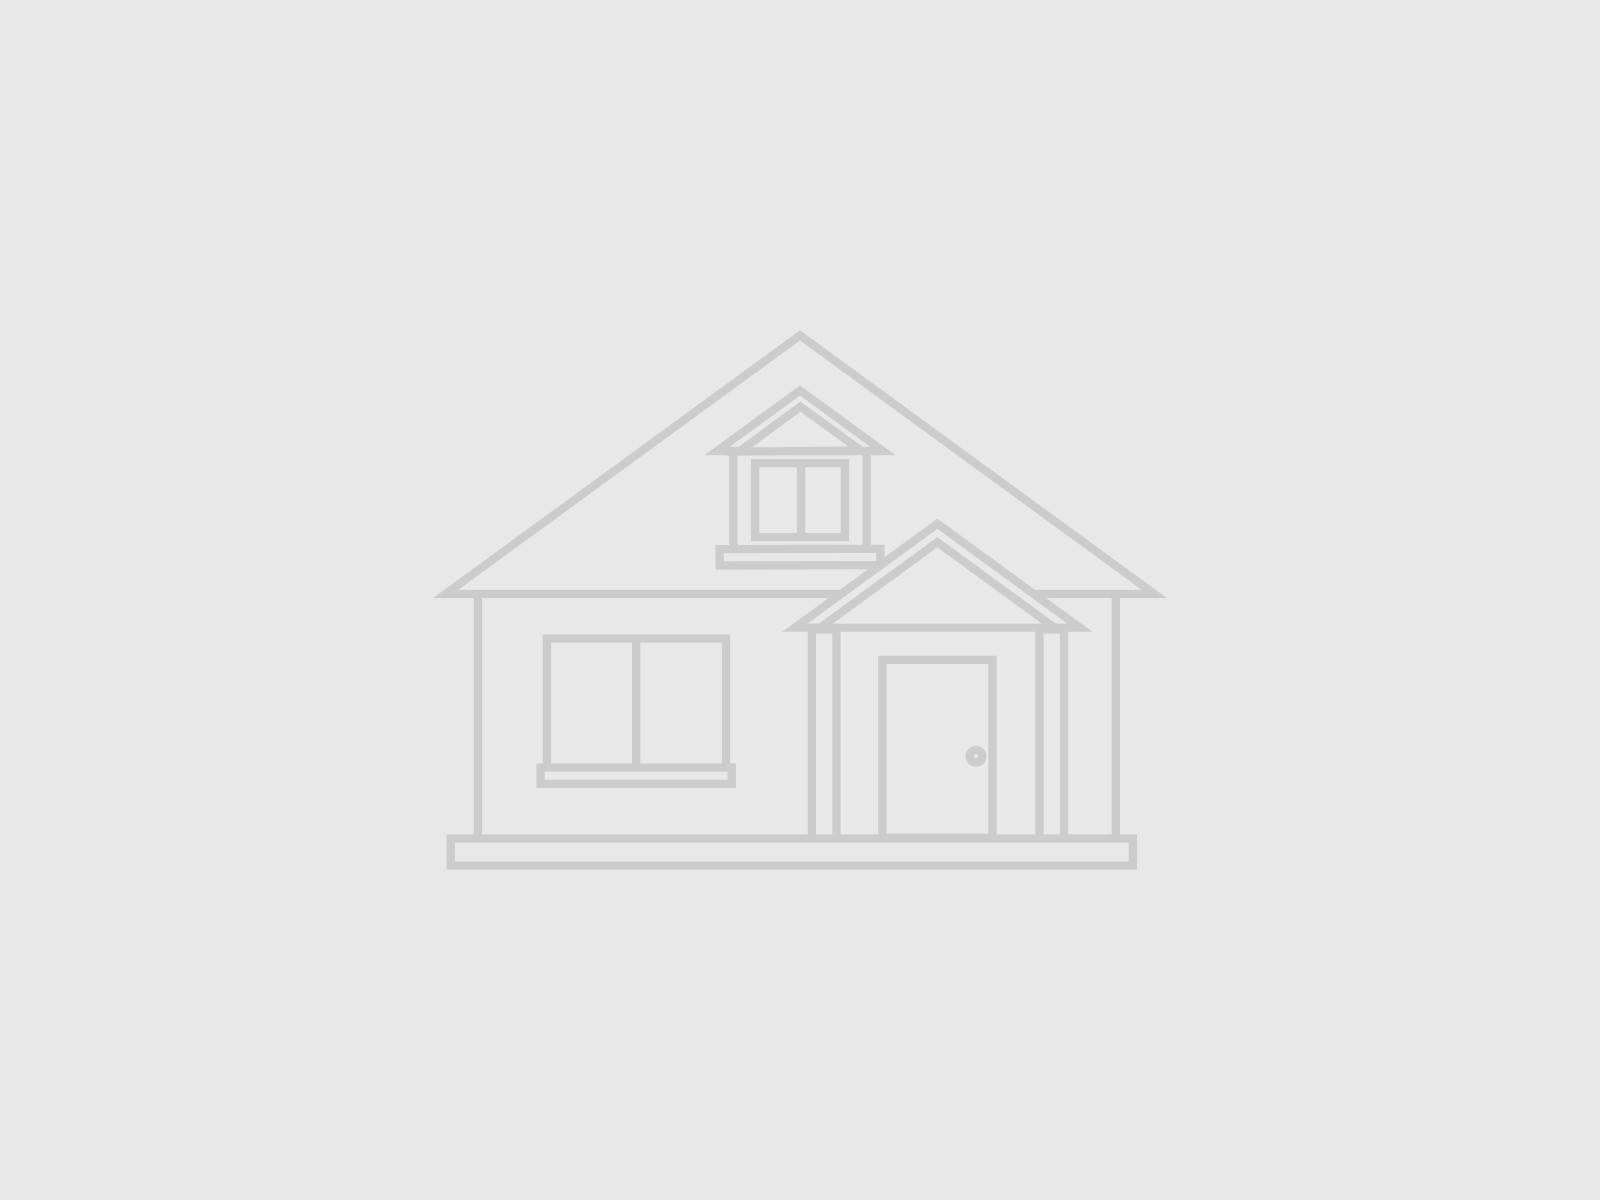 Single Family Homes for Active at 1171 S Fillmore Street, Denver, Co, 80210 1171 S Fillmore Street Denver, Colorado 80210 United States